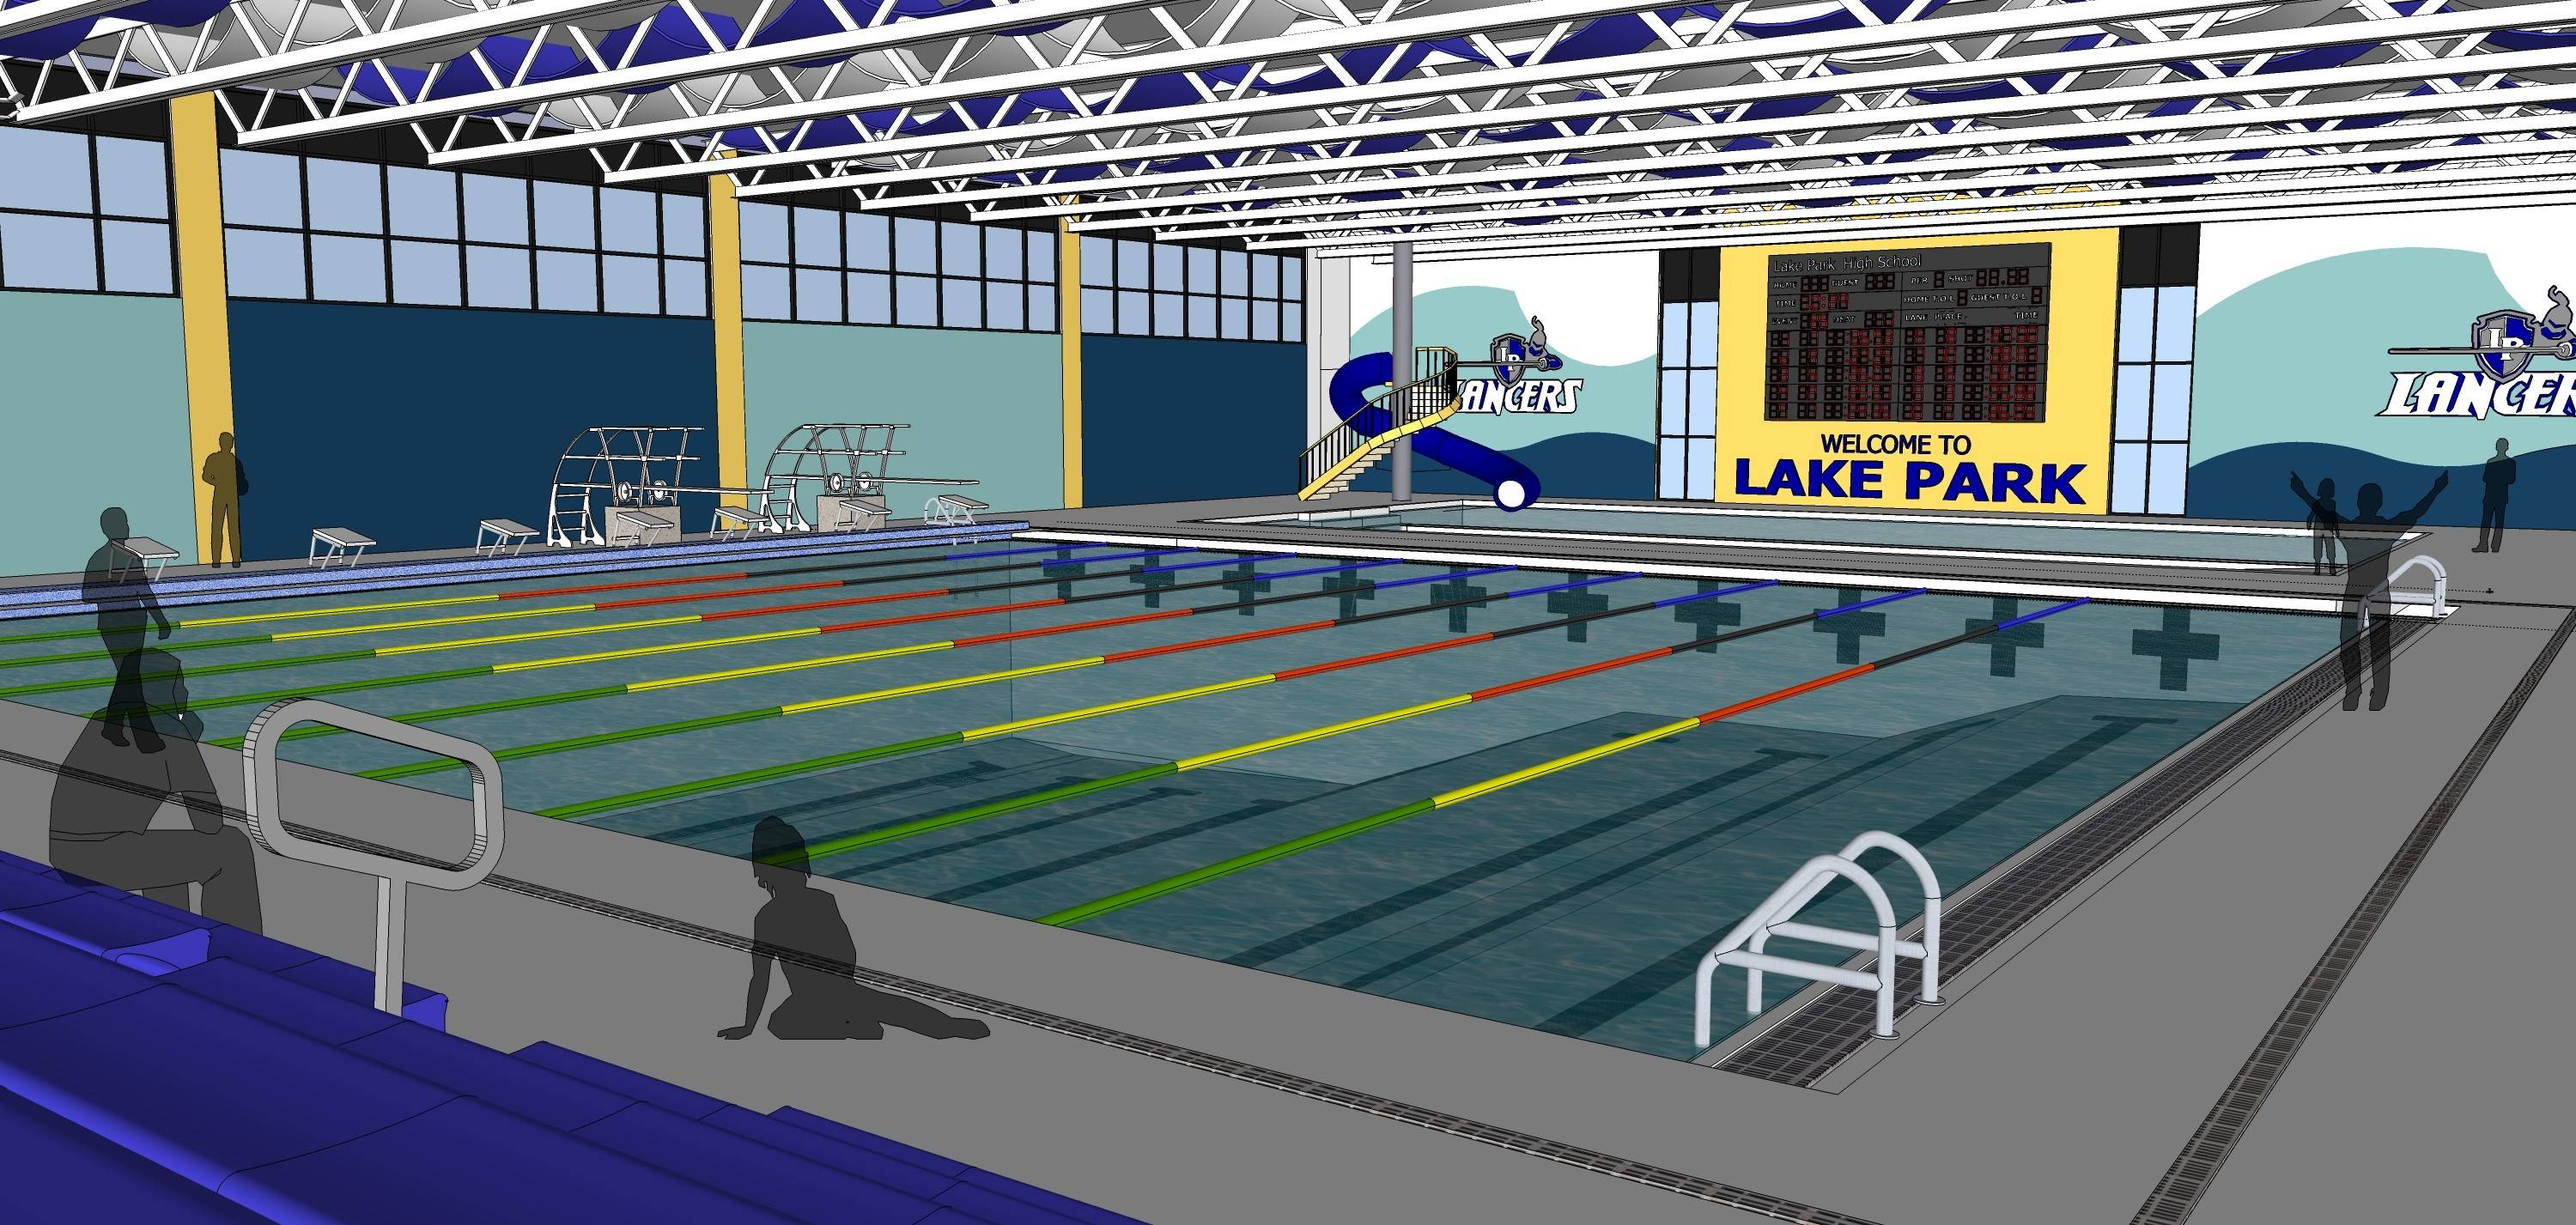 Lake Park pool push getting mixed reviews